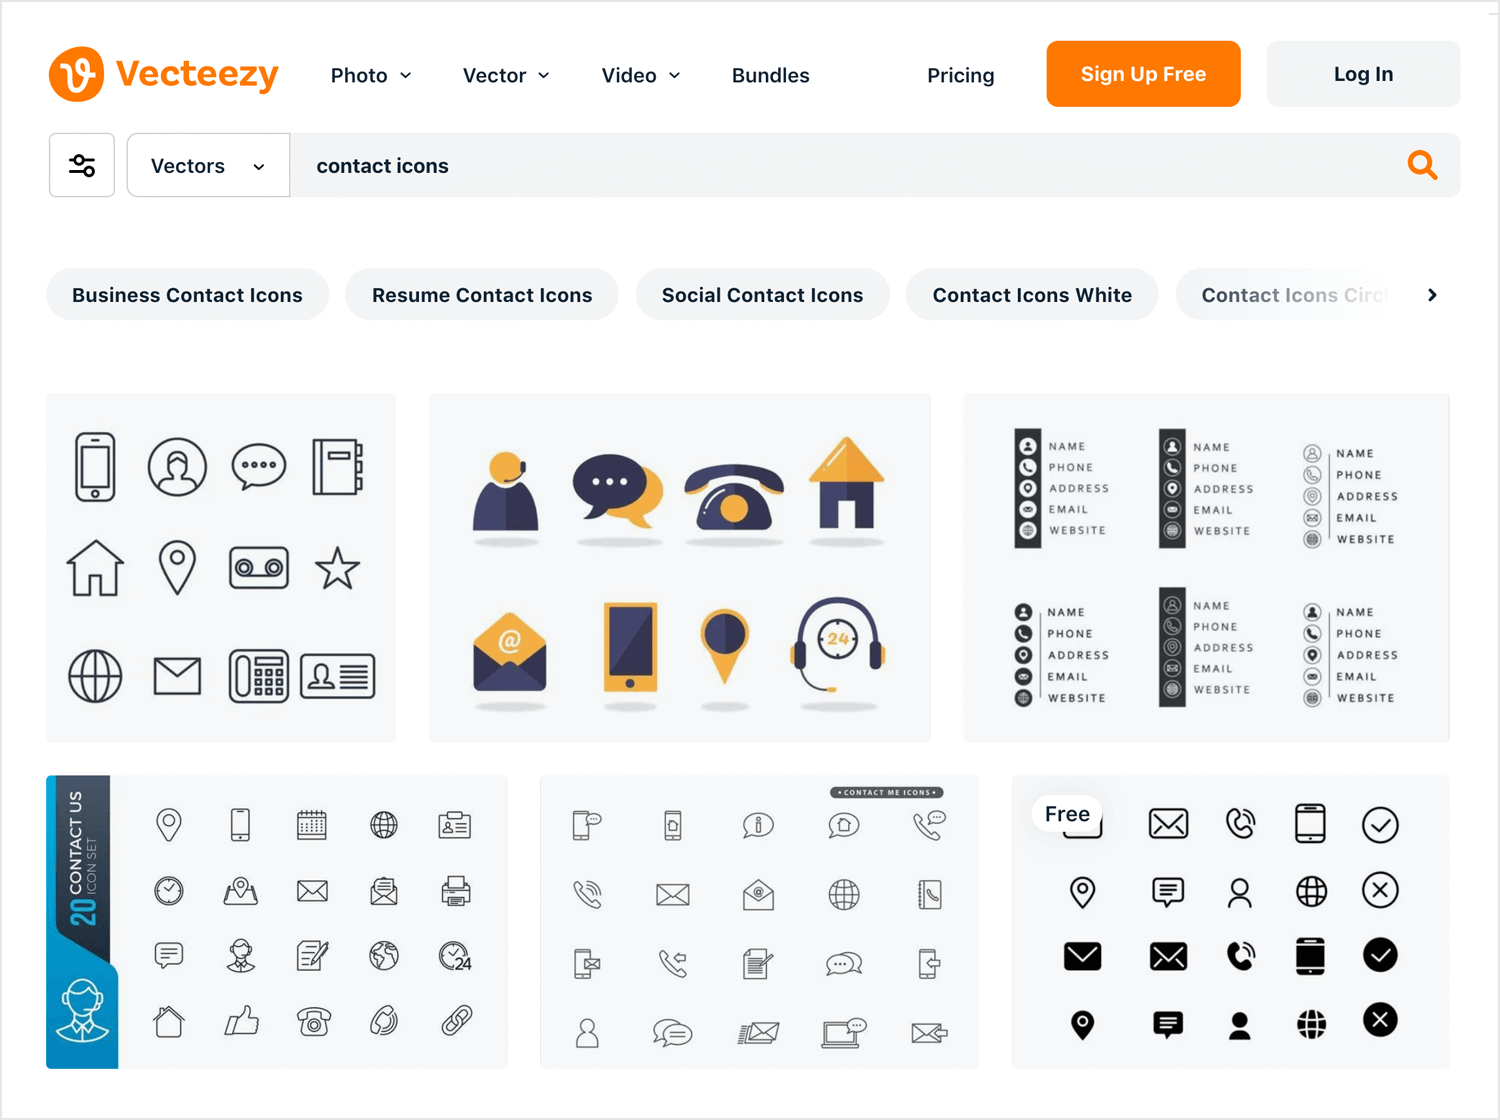 Free website icons to download - Vecteezy